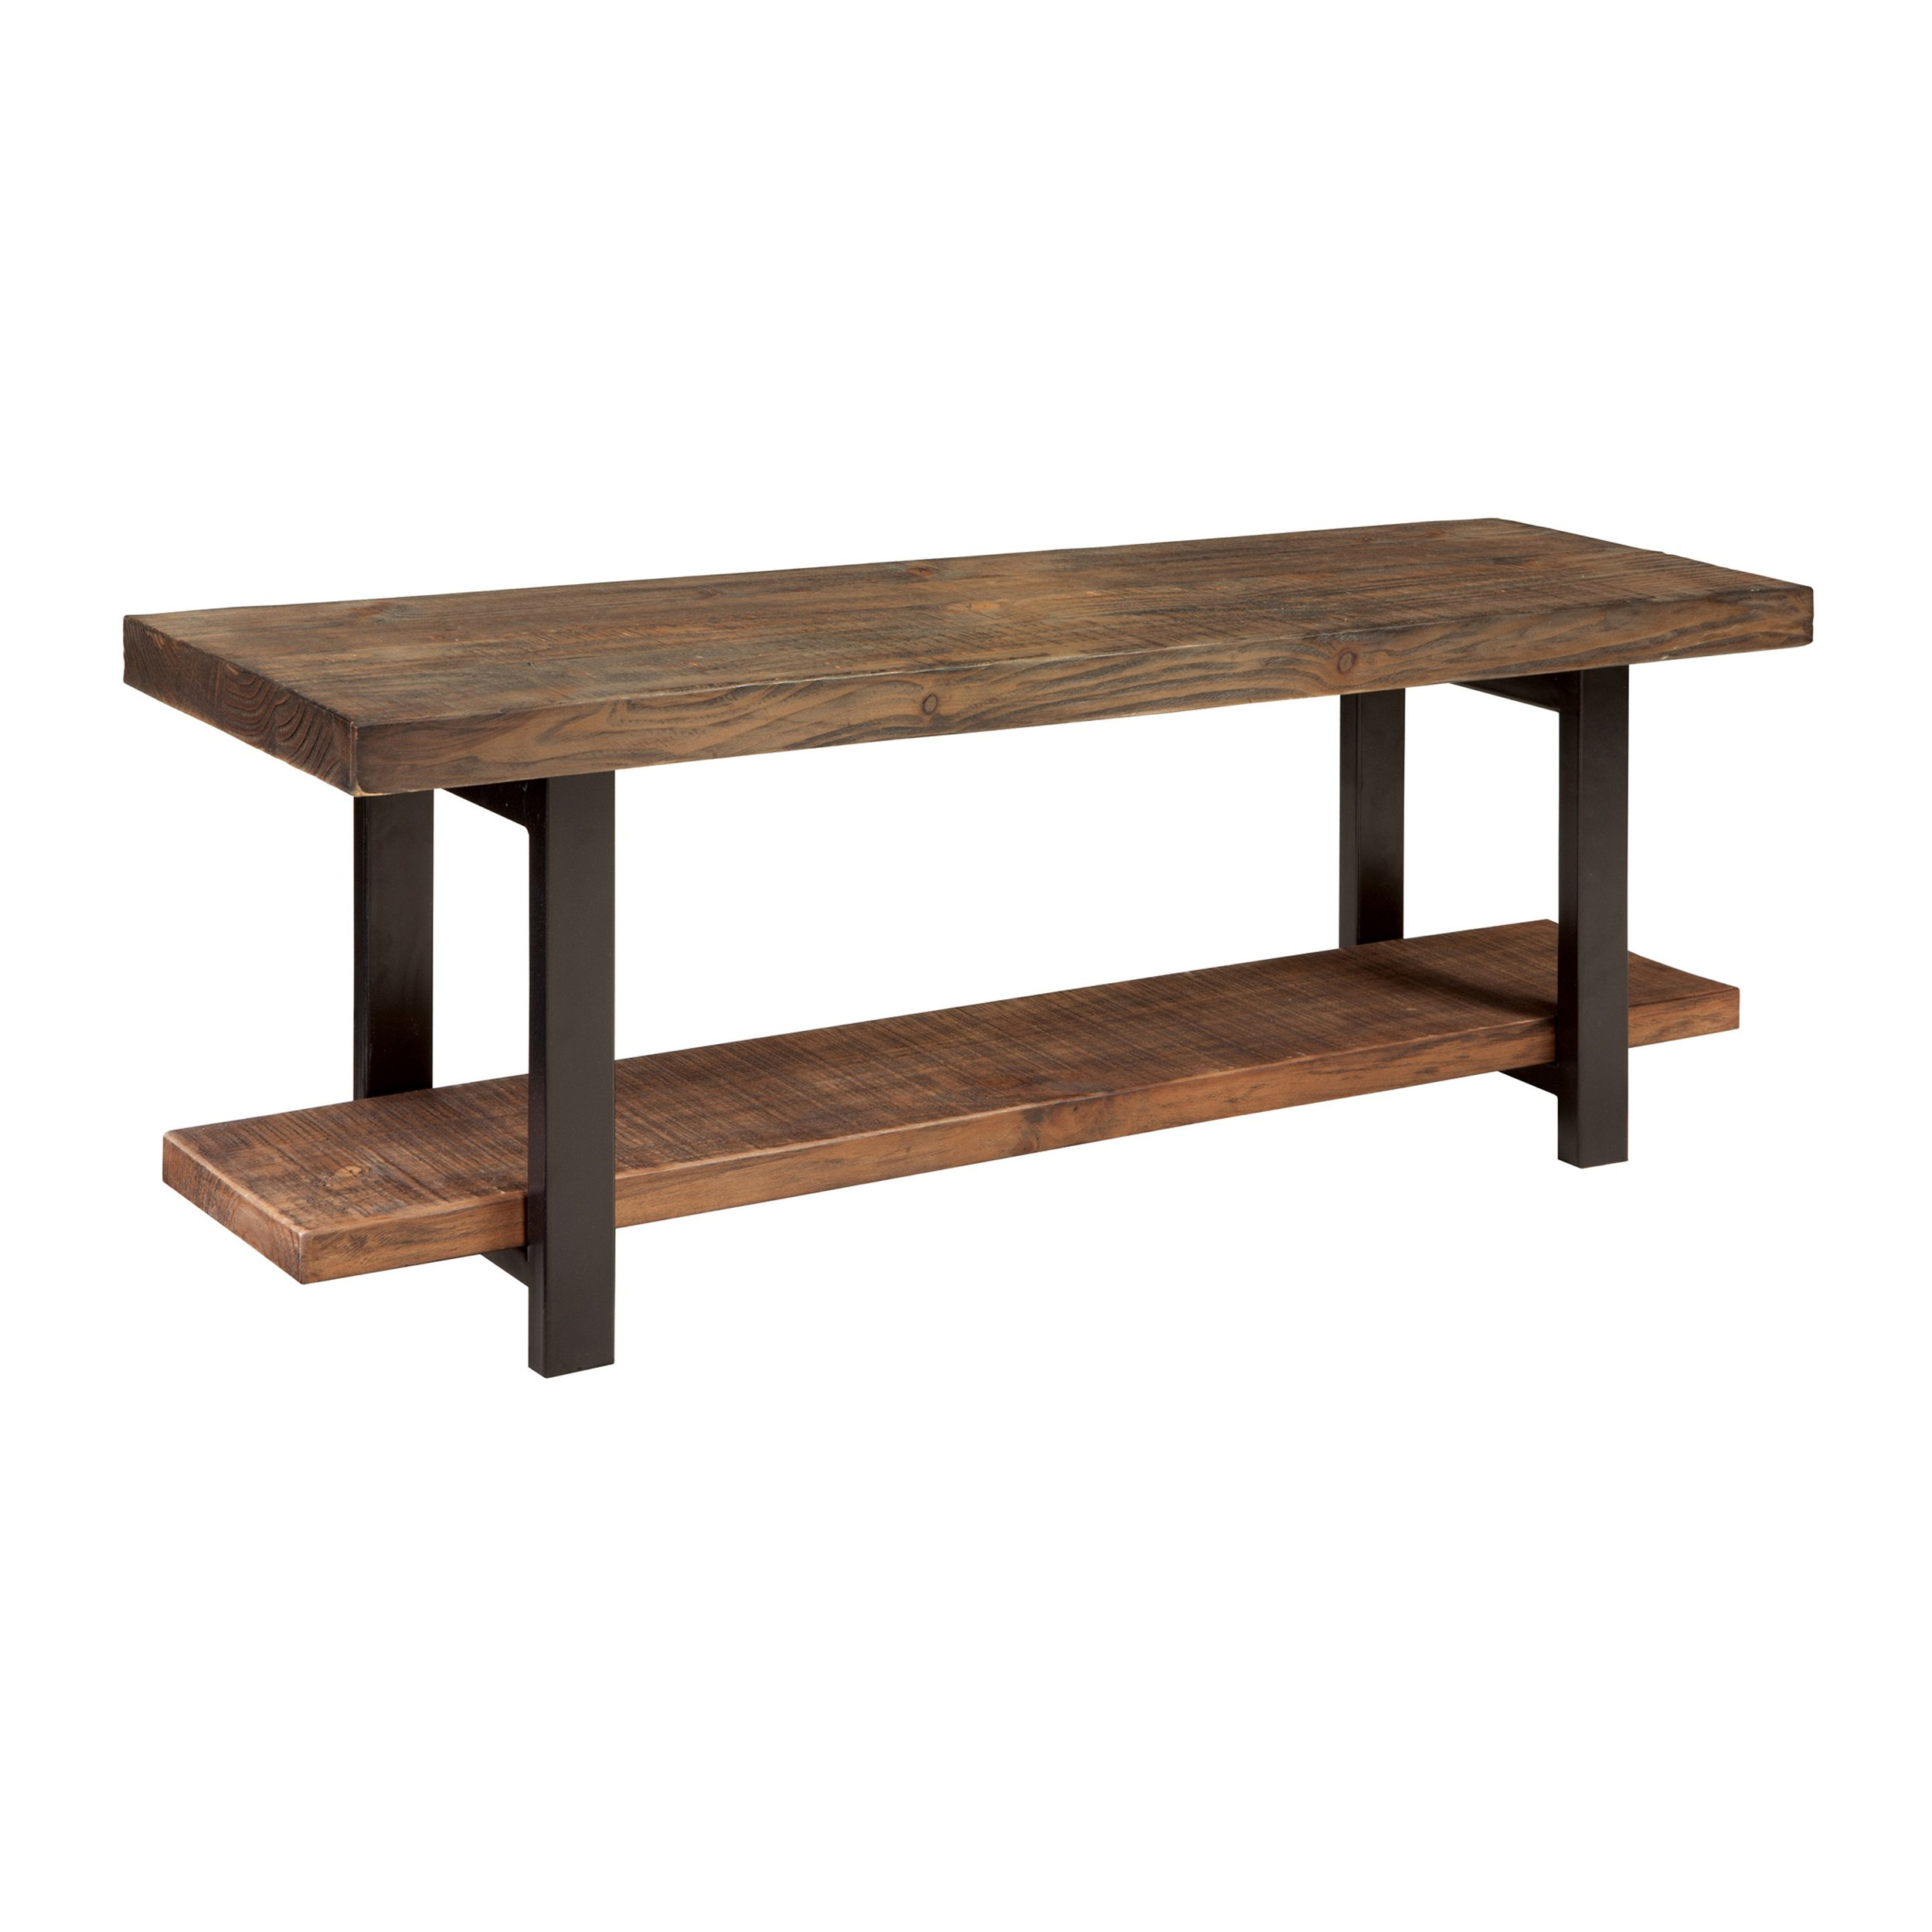 Alaterre Sonoma Reclaimed Wood Bench with Open Shelf, Natural, Brown - AMBA0320 by Alaterre